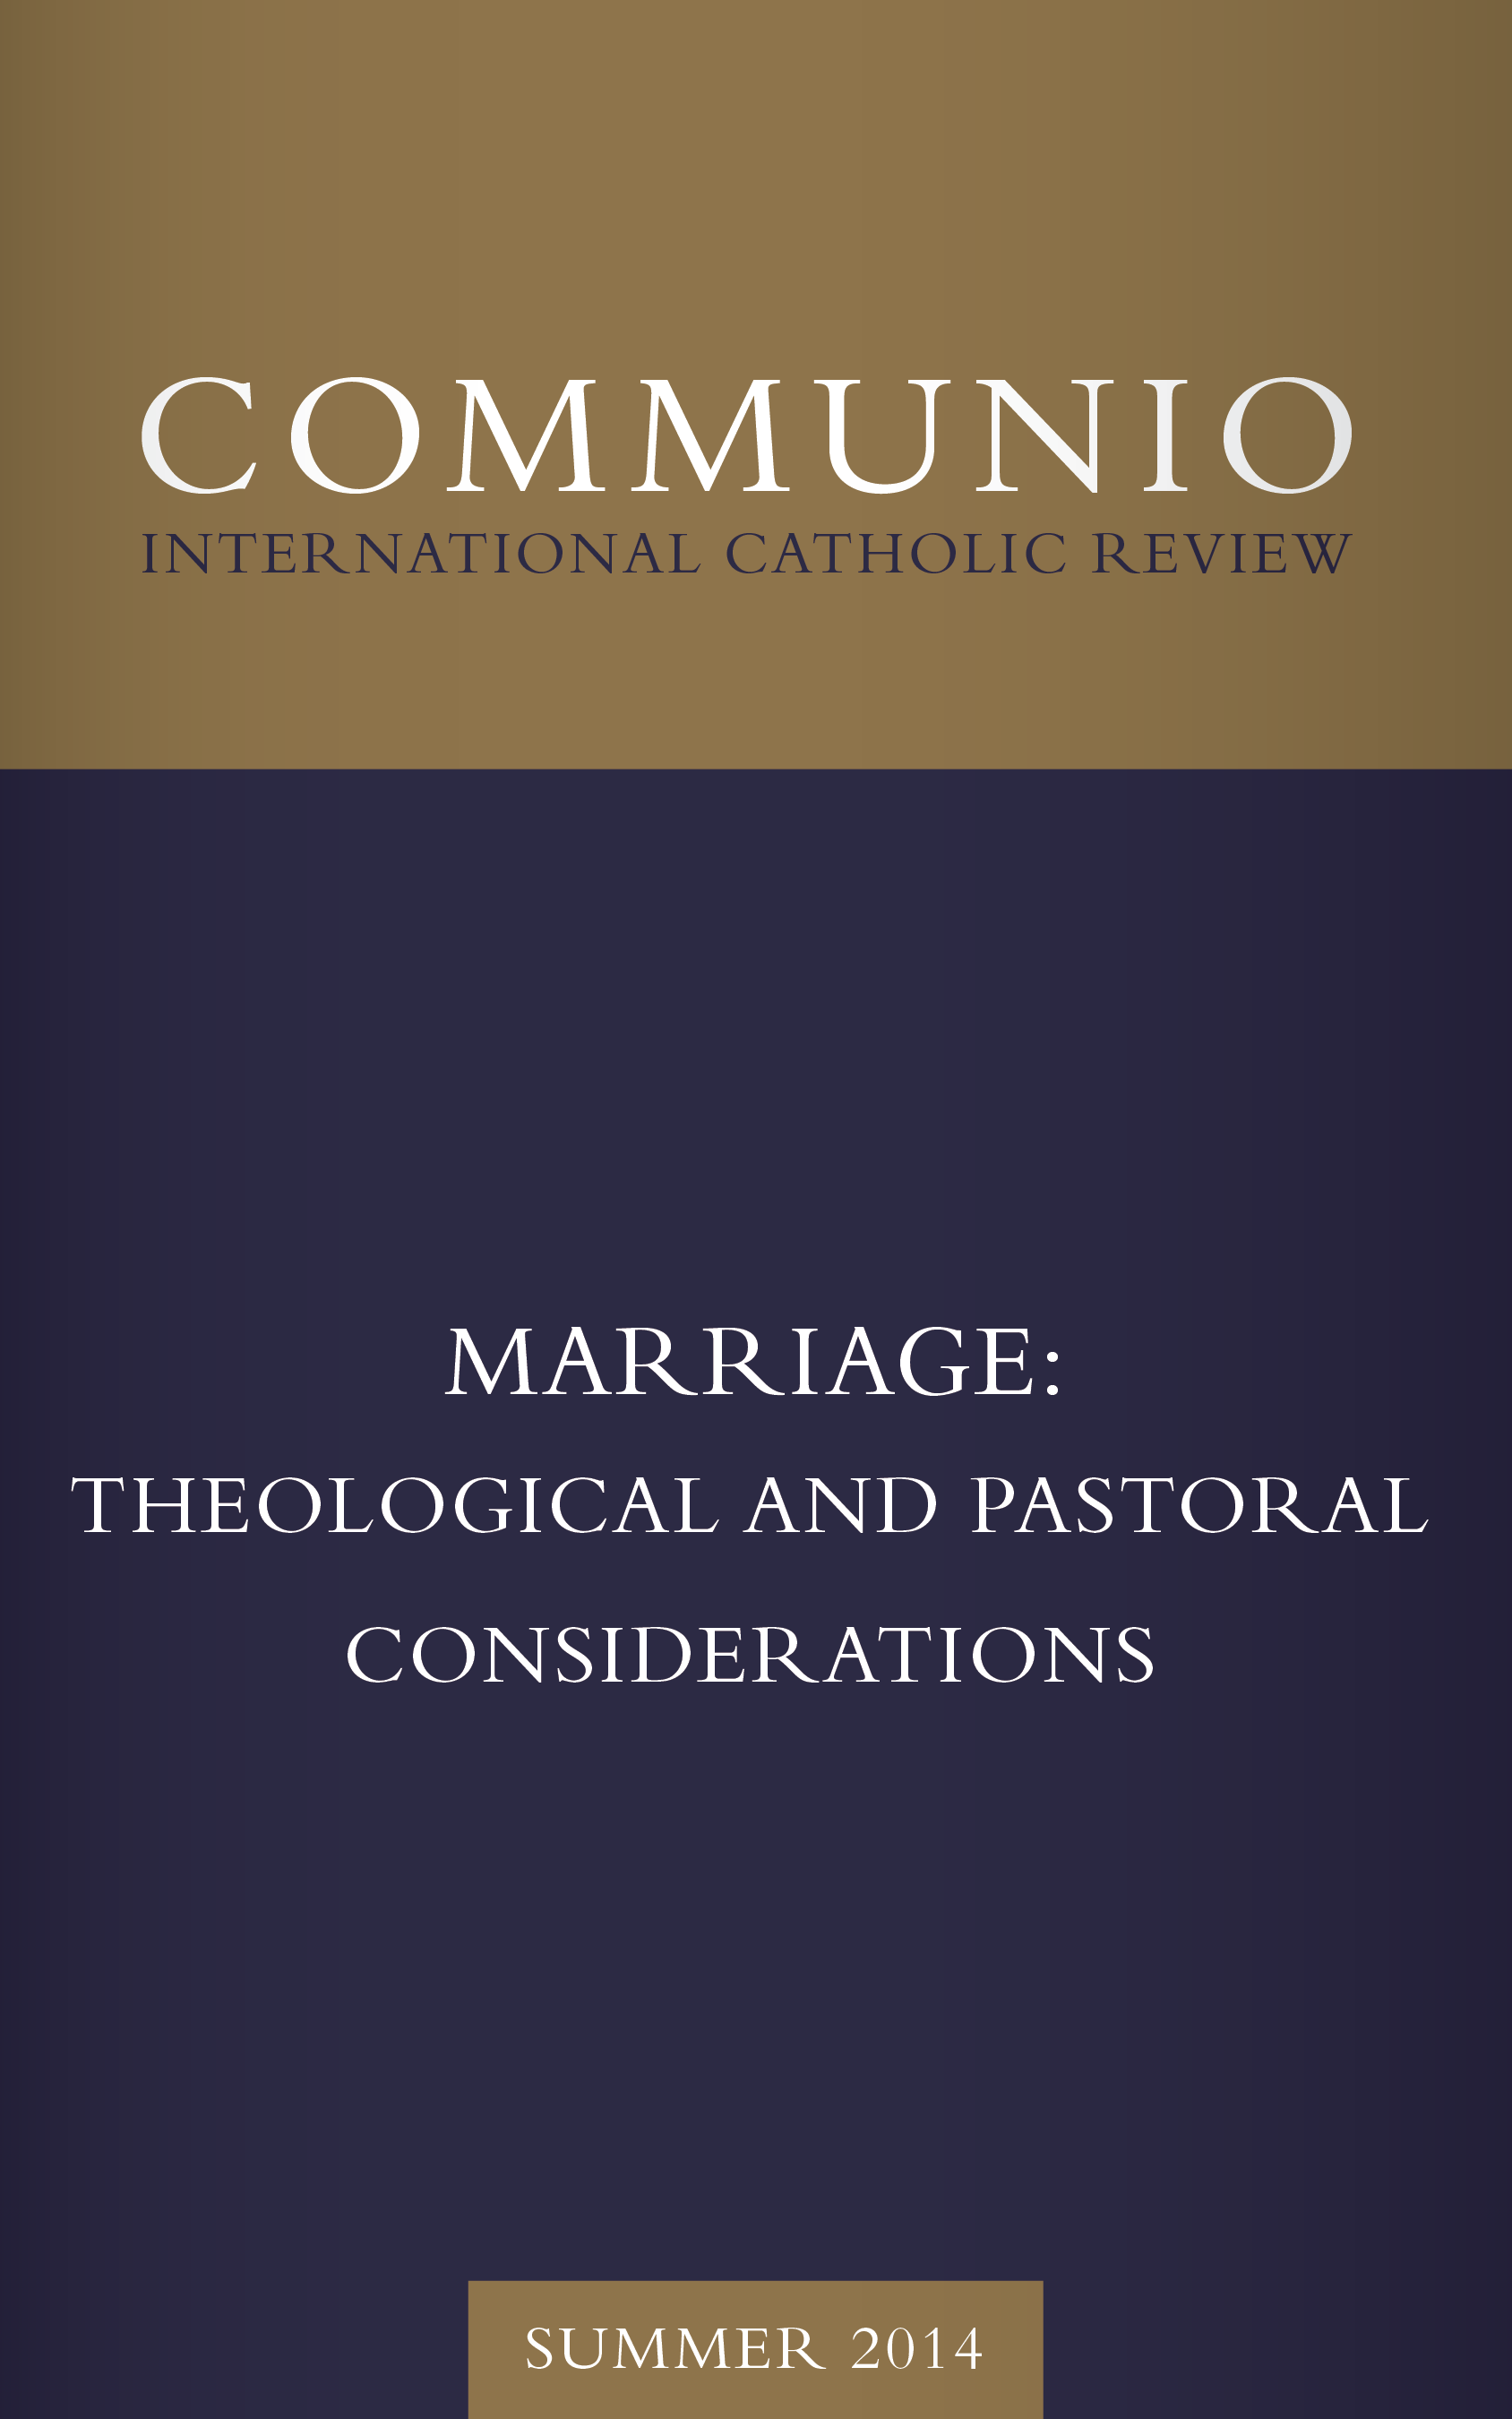 gay marriage public reason and the common good articles communio communio summer 2014 marriage theological and pastoral considerations